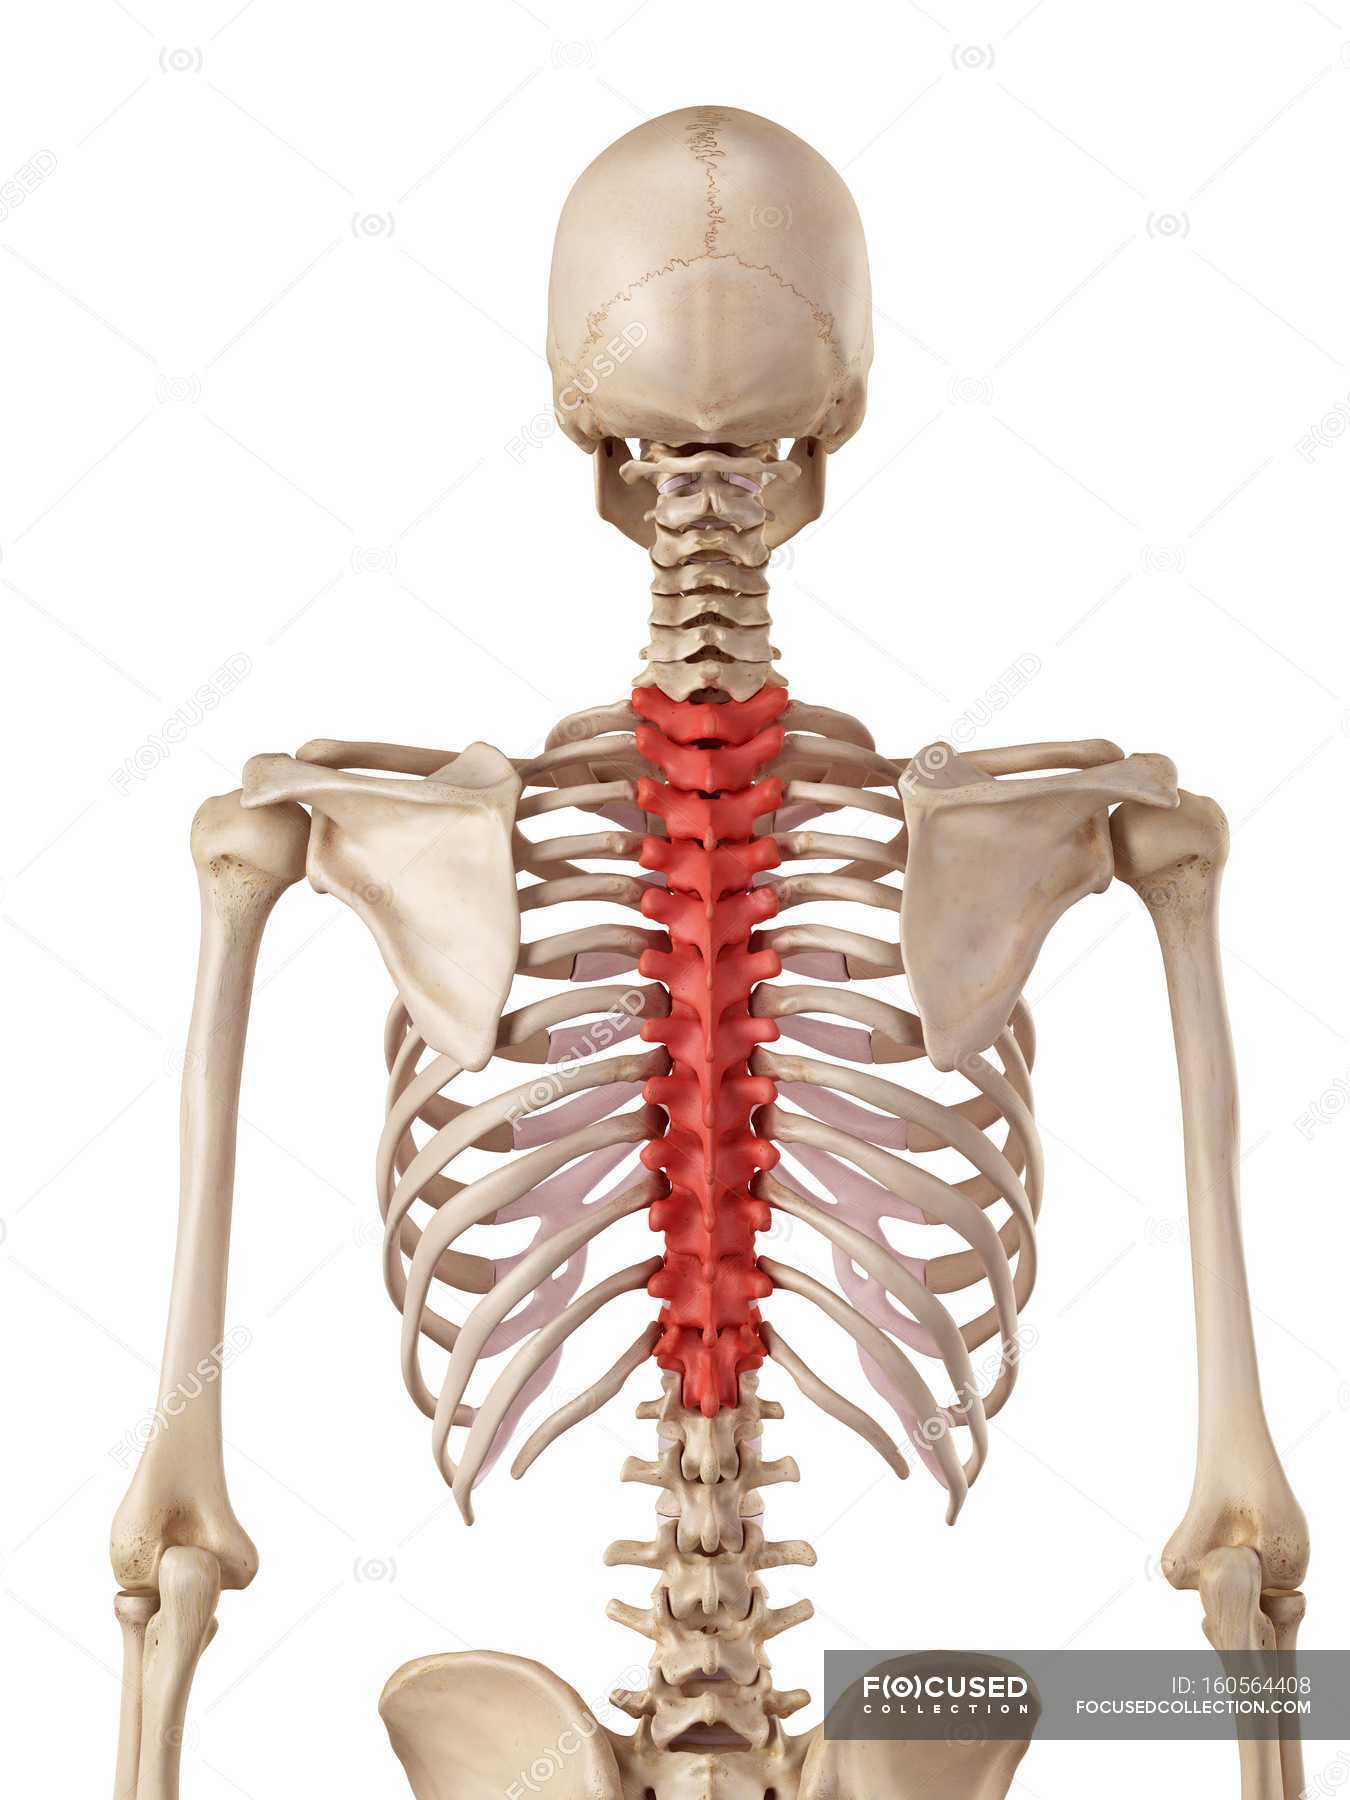 Human Thoracic Spine White Background Rear View Stock Photo